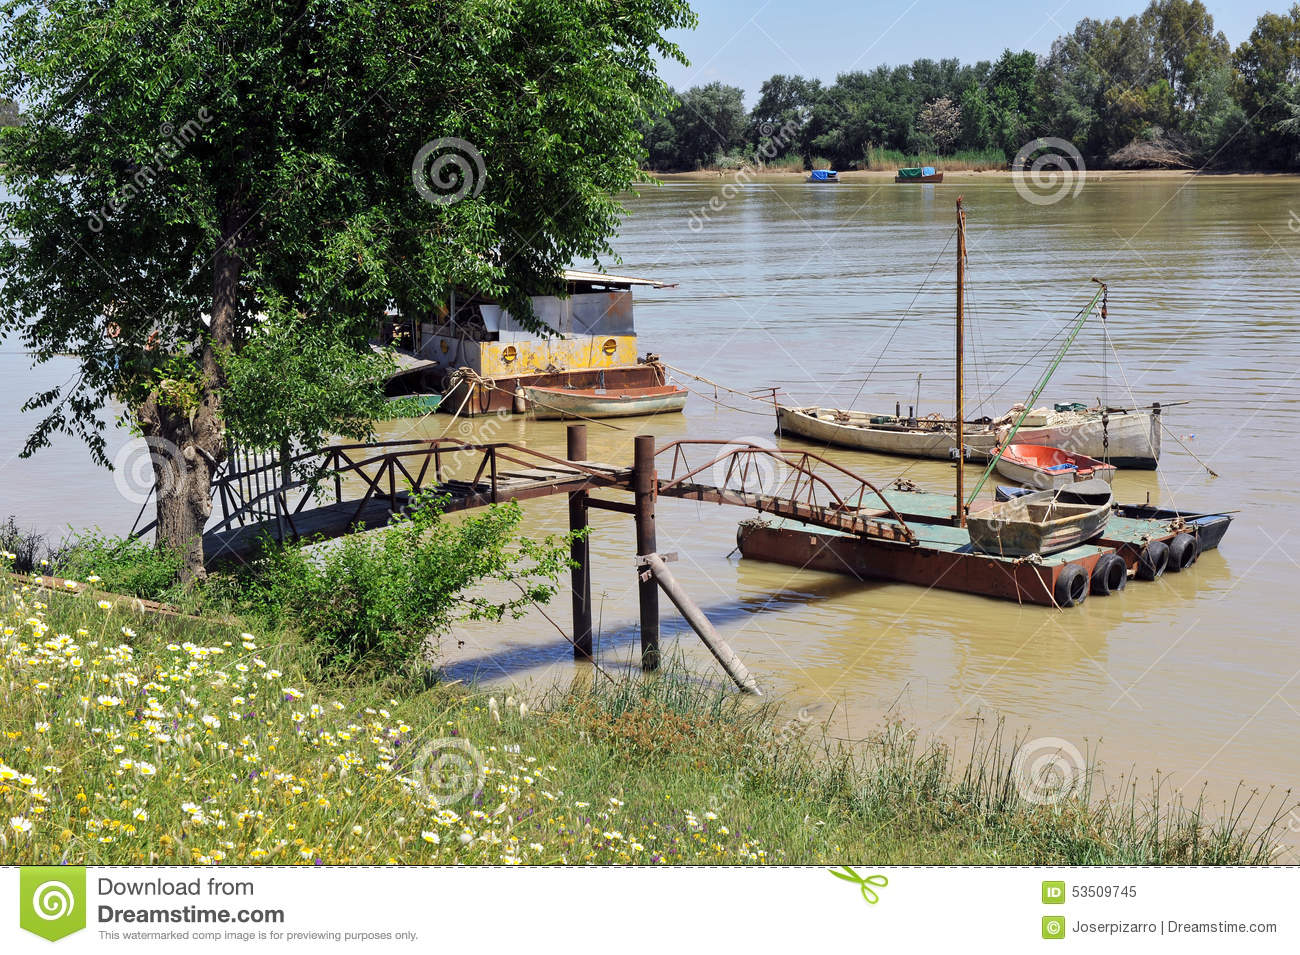 Small boats at the pier, the Guadalquivir River as it passes through Coria del Rio, Seville province, Andalusia, Spain